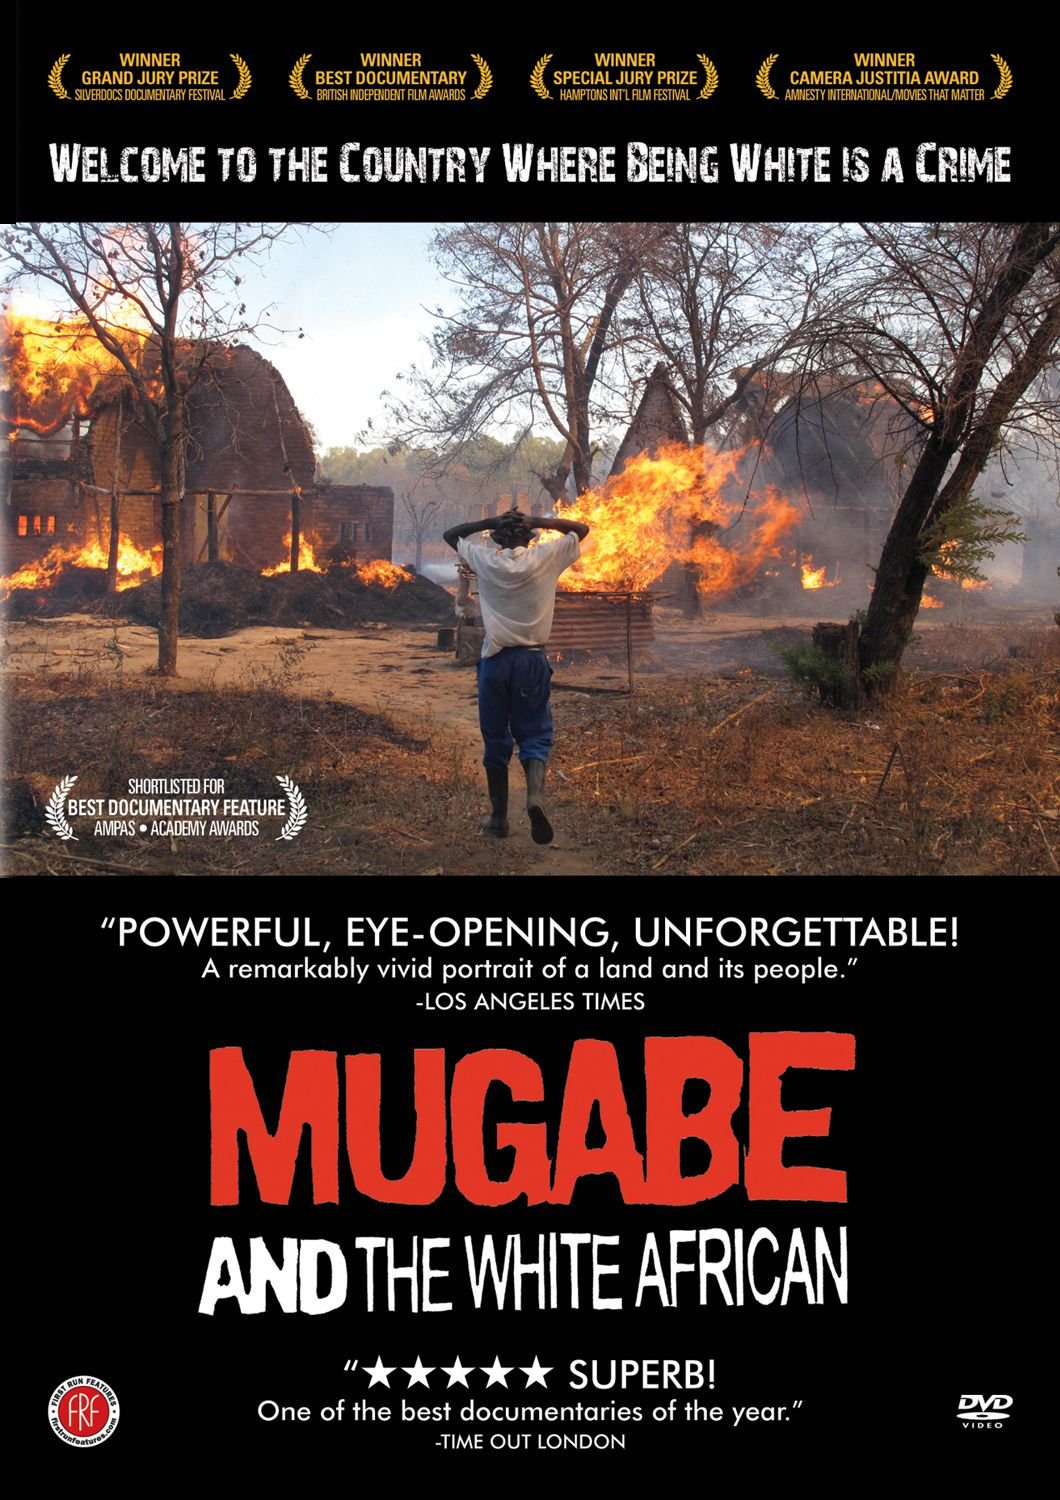 Publicity still for Mugabe and the White African